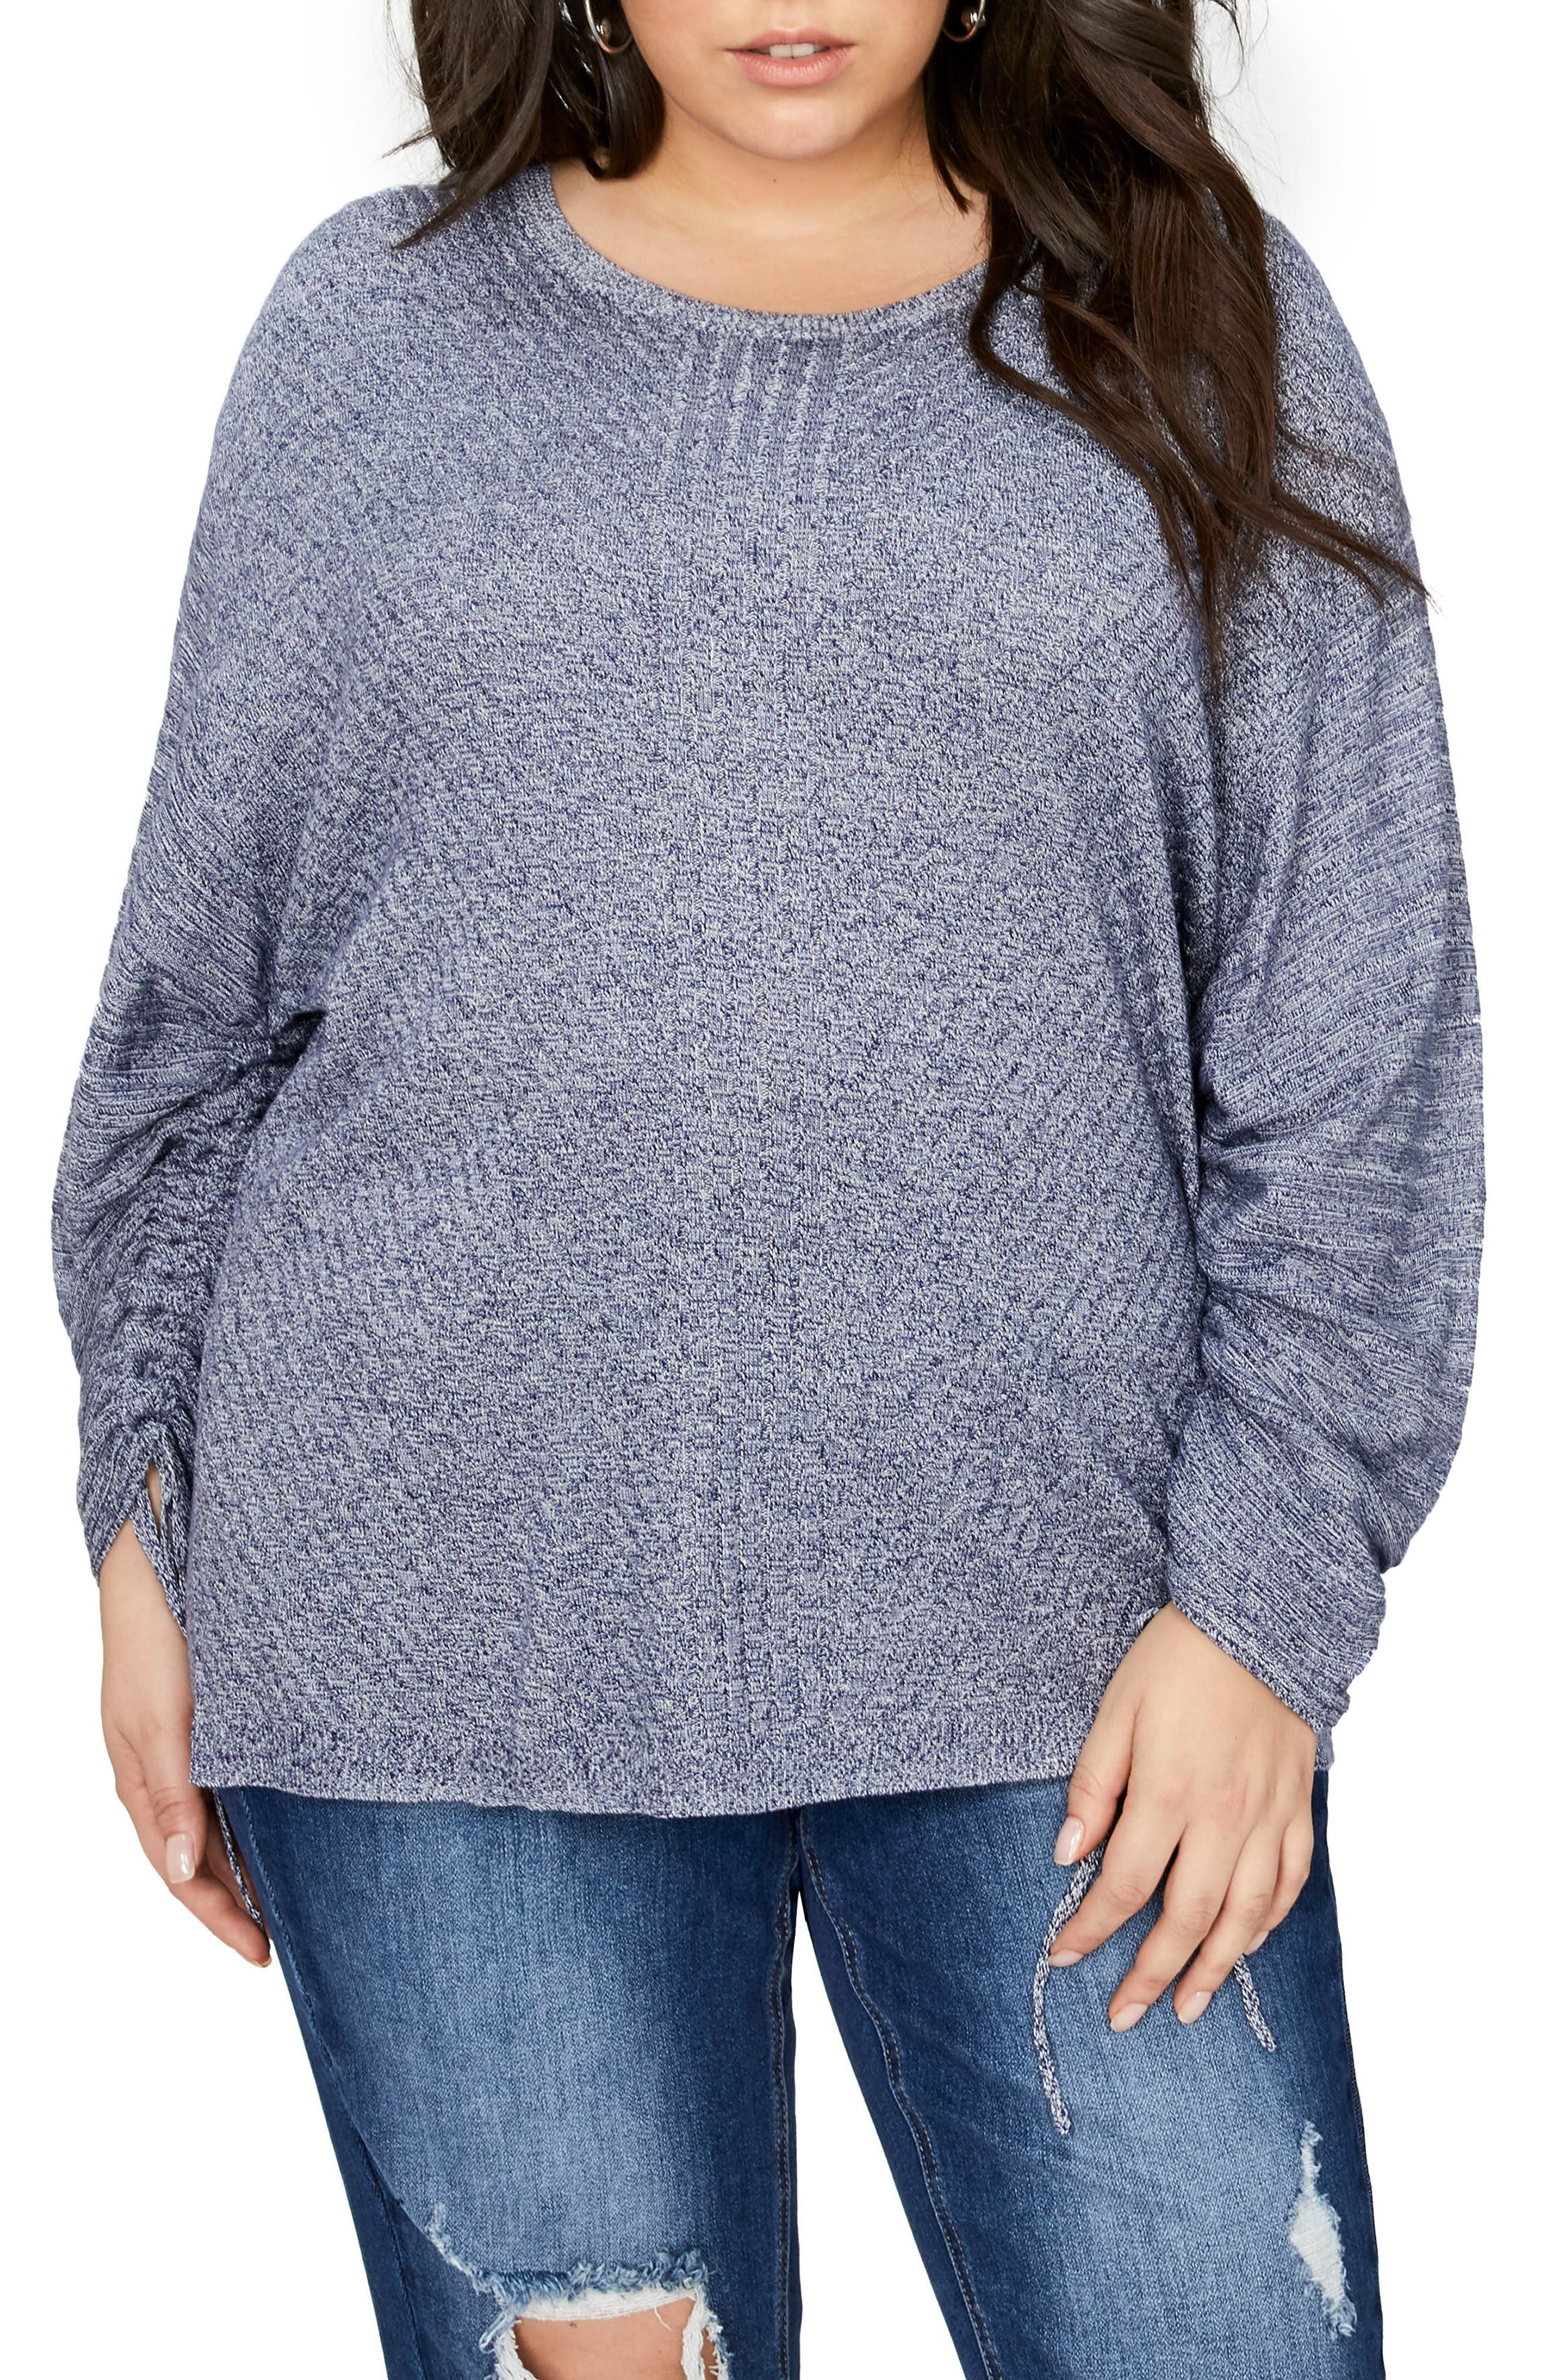 ADDITION ELLE LOVE AND LEGEND Drawcord Sleeve Sweater (Plus Size)